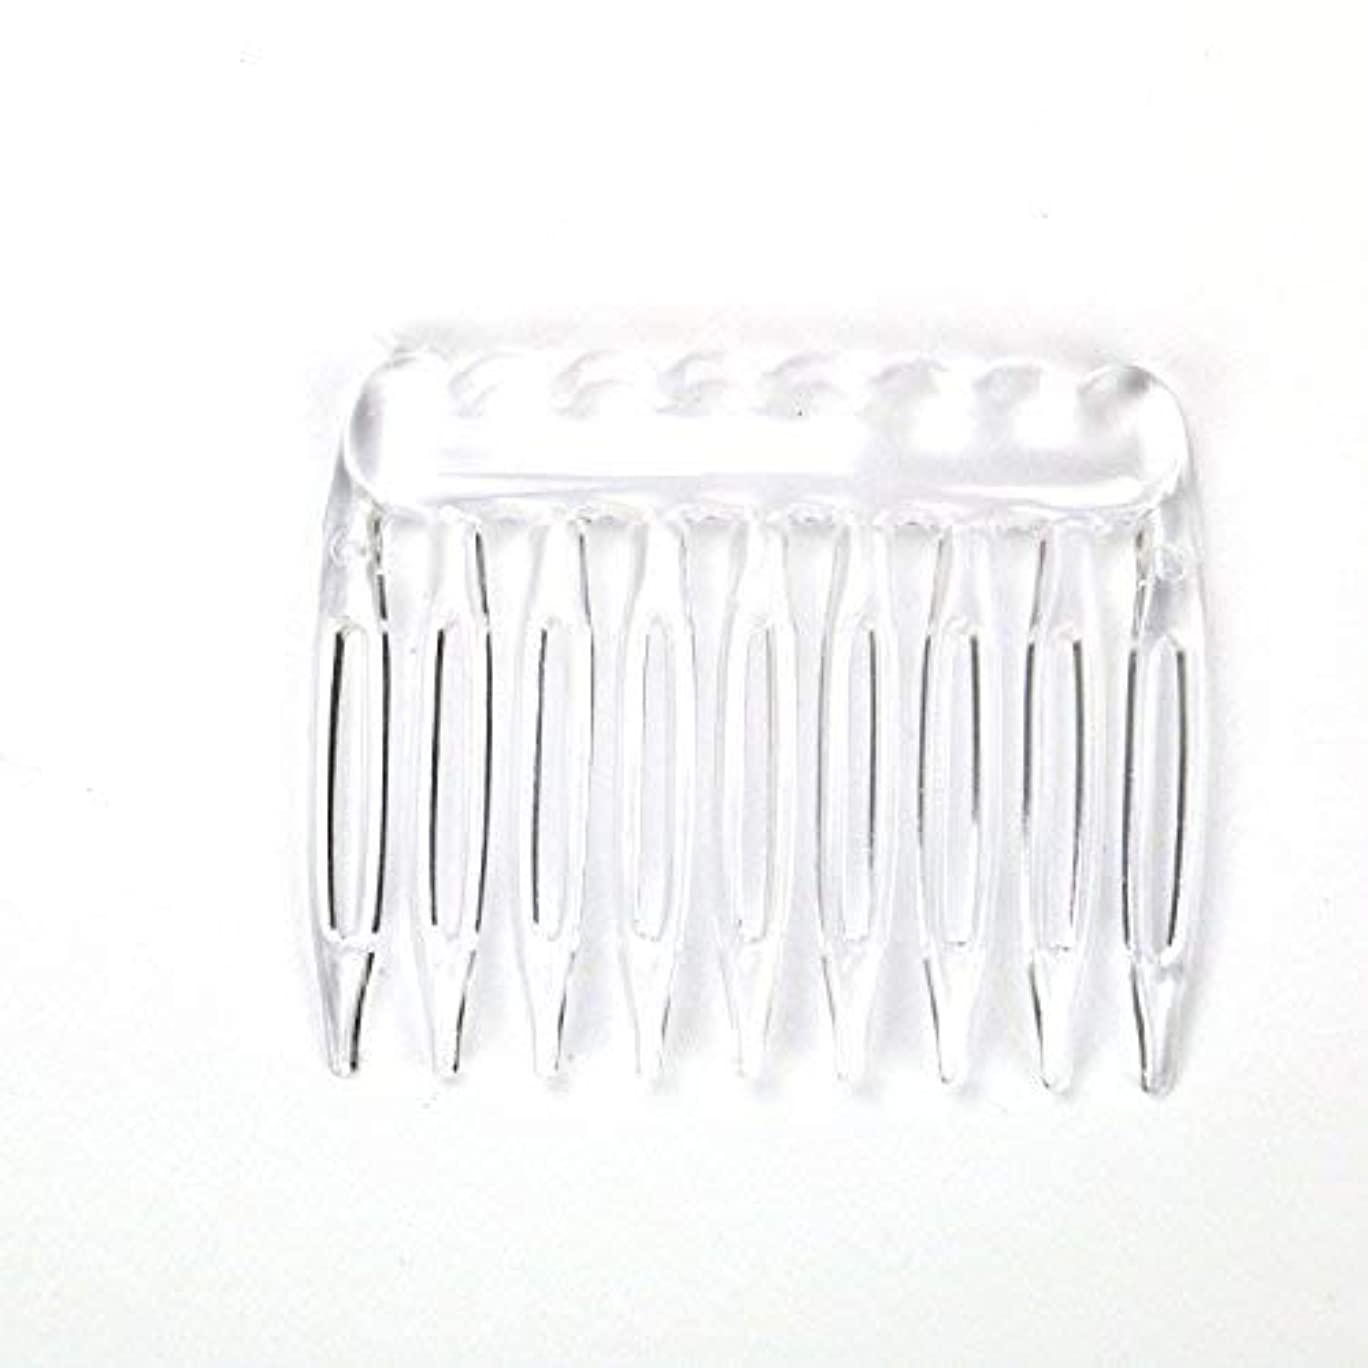 十分ではない困惑したすりTOPMO Pack of 30 Clear Plain Plastic Smooth Hair Clips Combs Wire Twist Bridal Wedding Veil Combs,9 Teeth Designed...